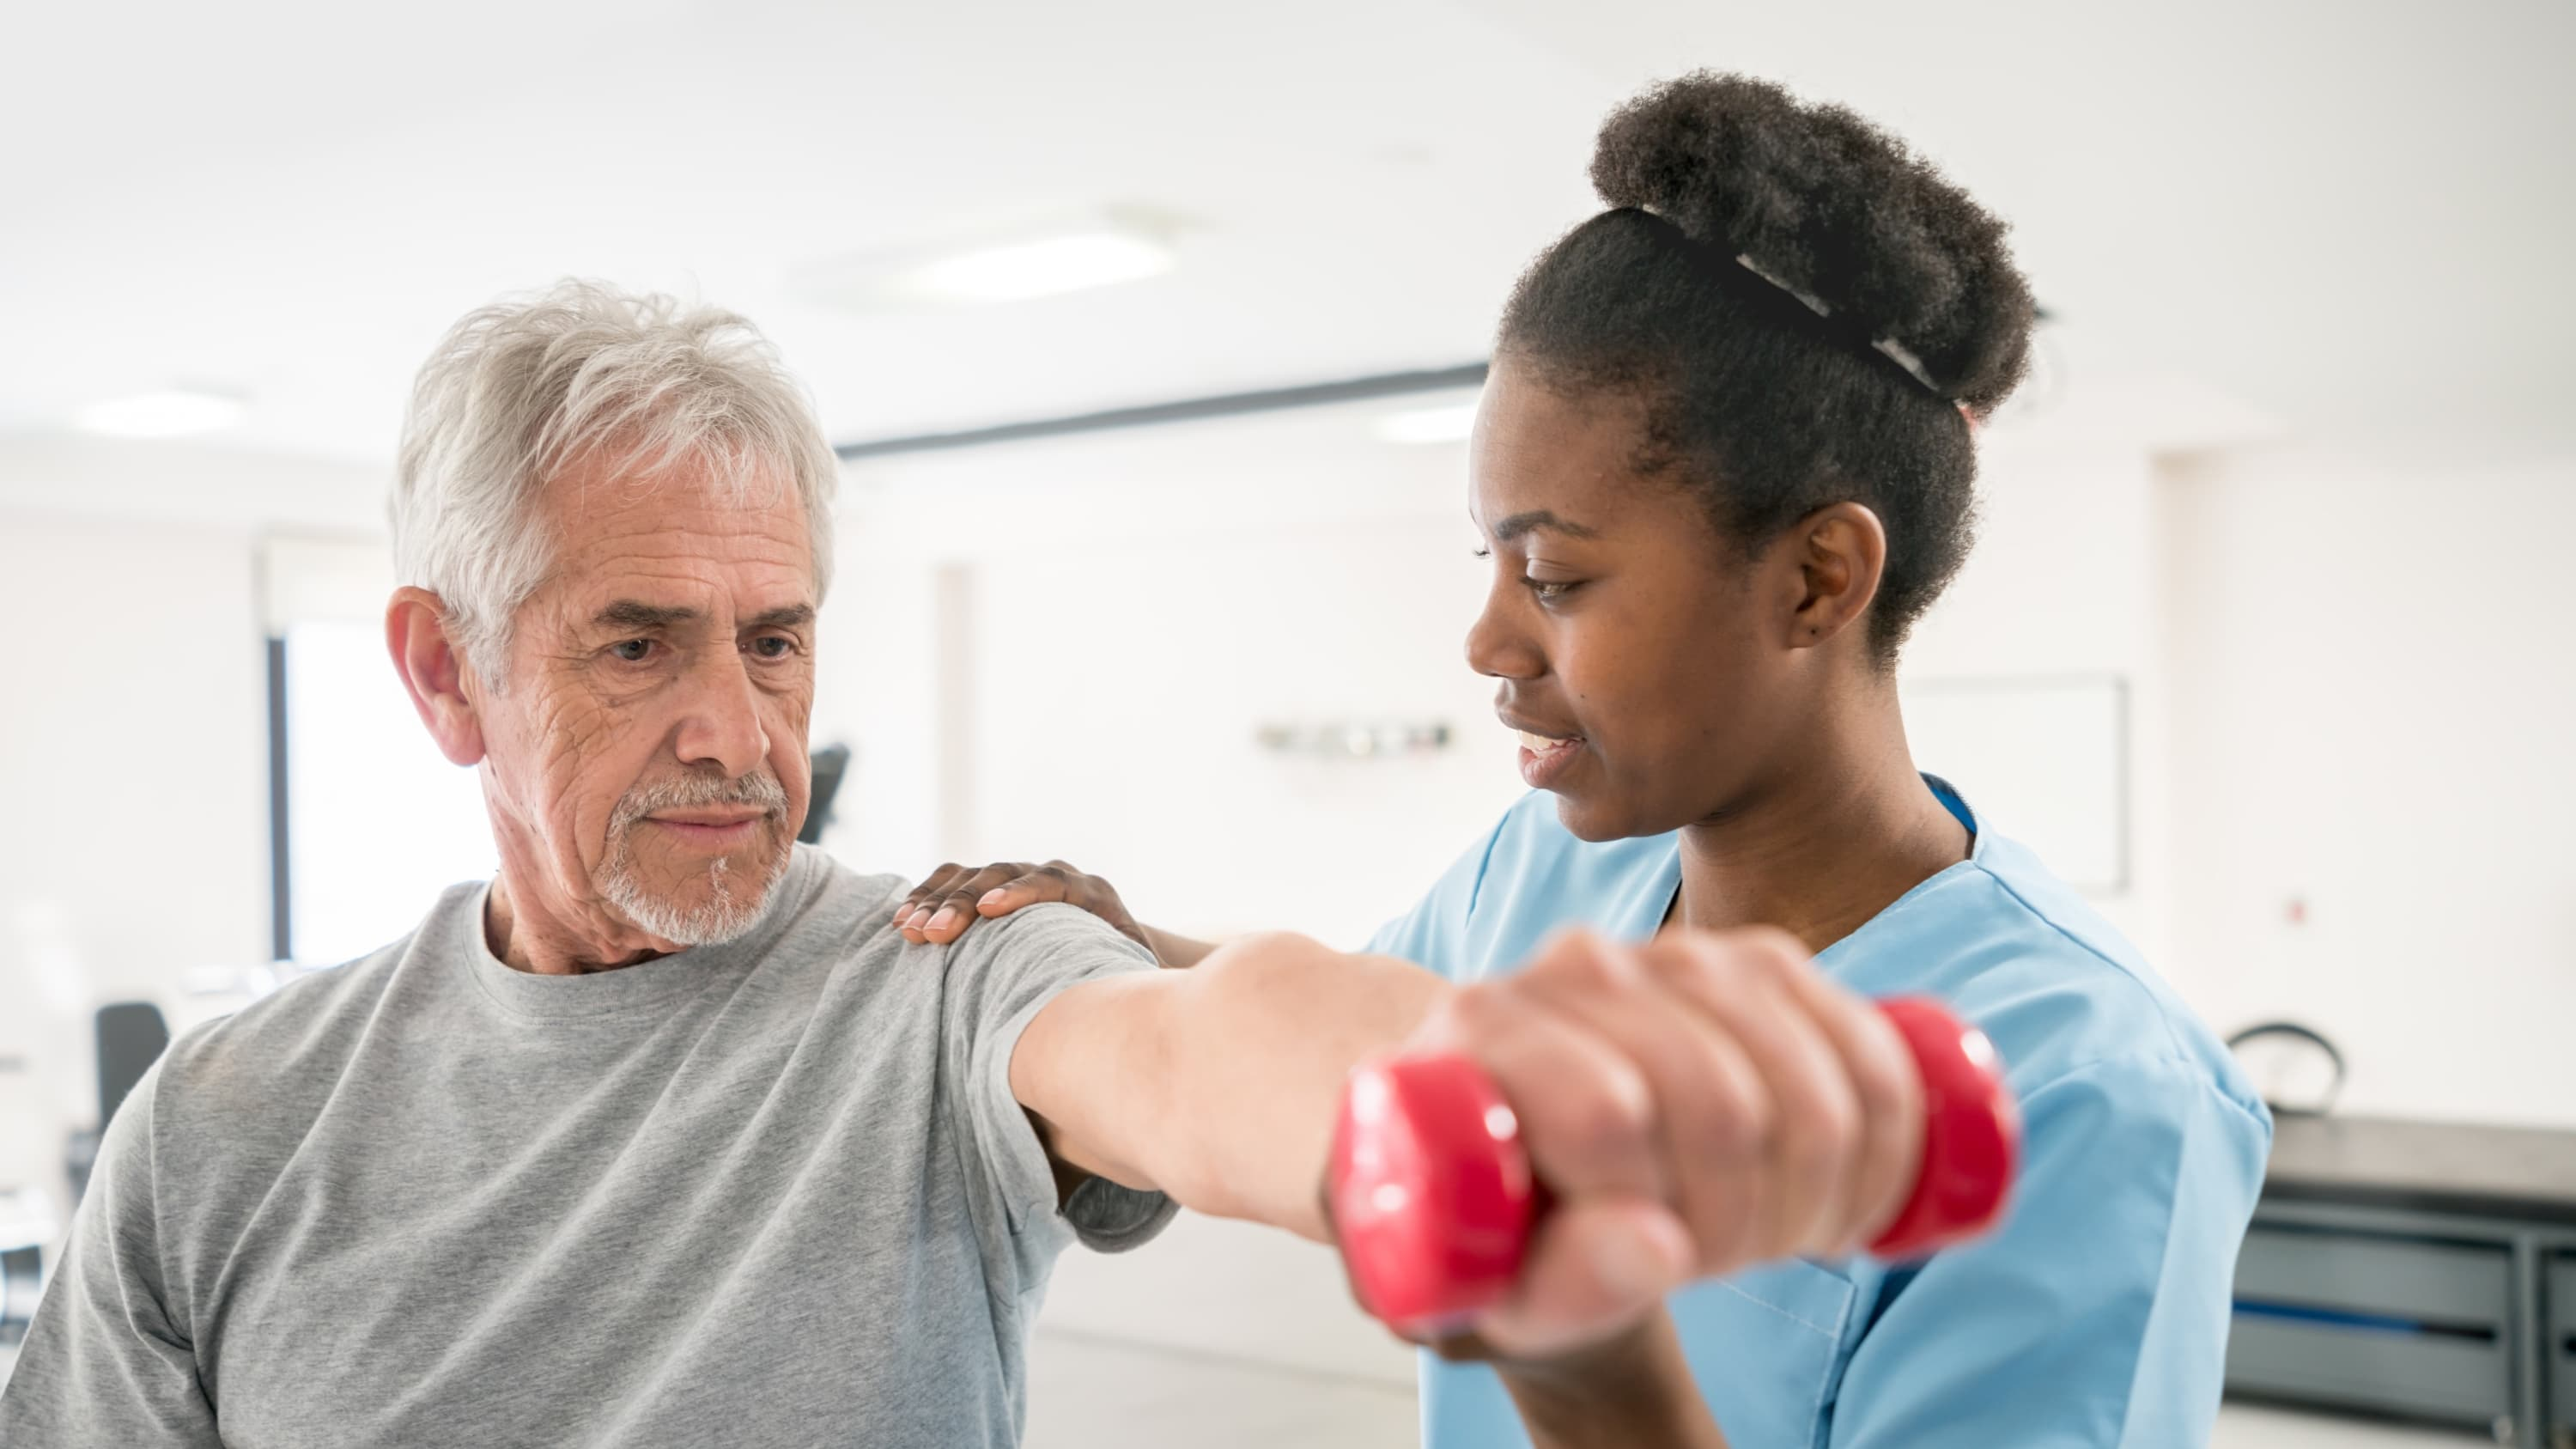 man undergoing  cardiac rehabilitation